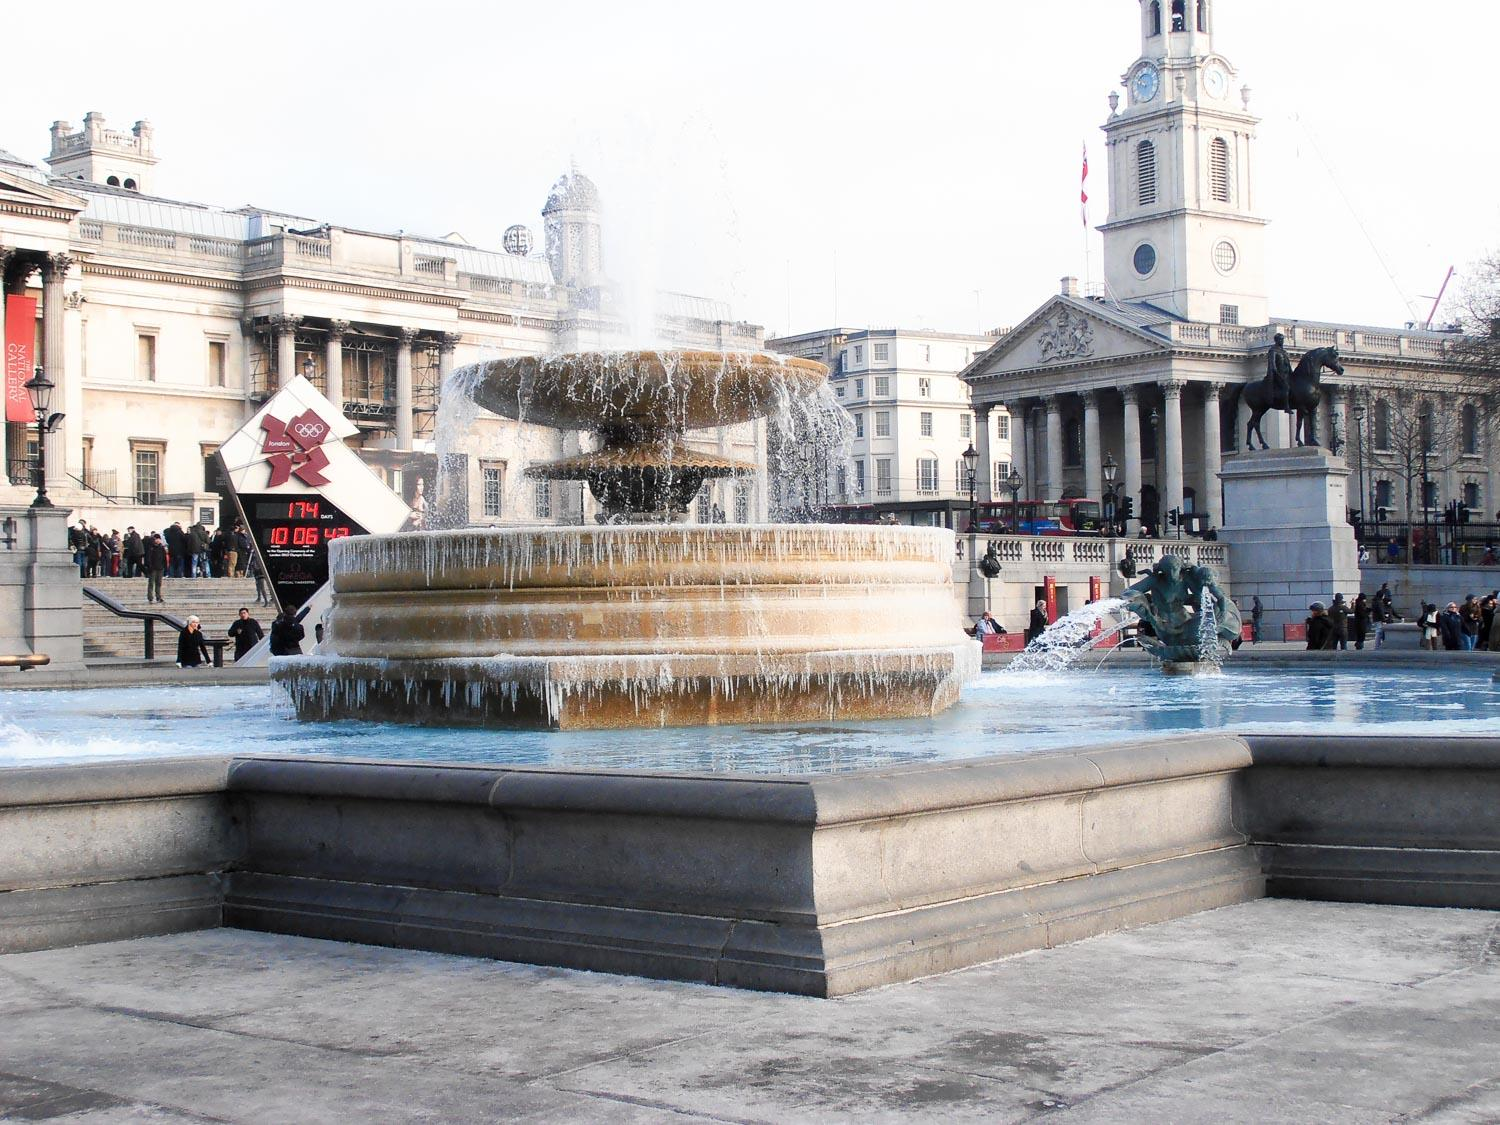 2db5d072-2dde-409c-9deb-68cd937ad5a5-129052d7-872f-41c4-b25a-ff62bcbd647f-tour_photos-Trafalgar-Square-in-a-very-cold-morning-04.02.12.jpg